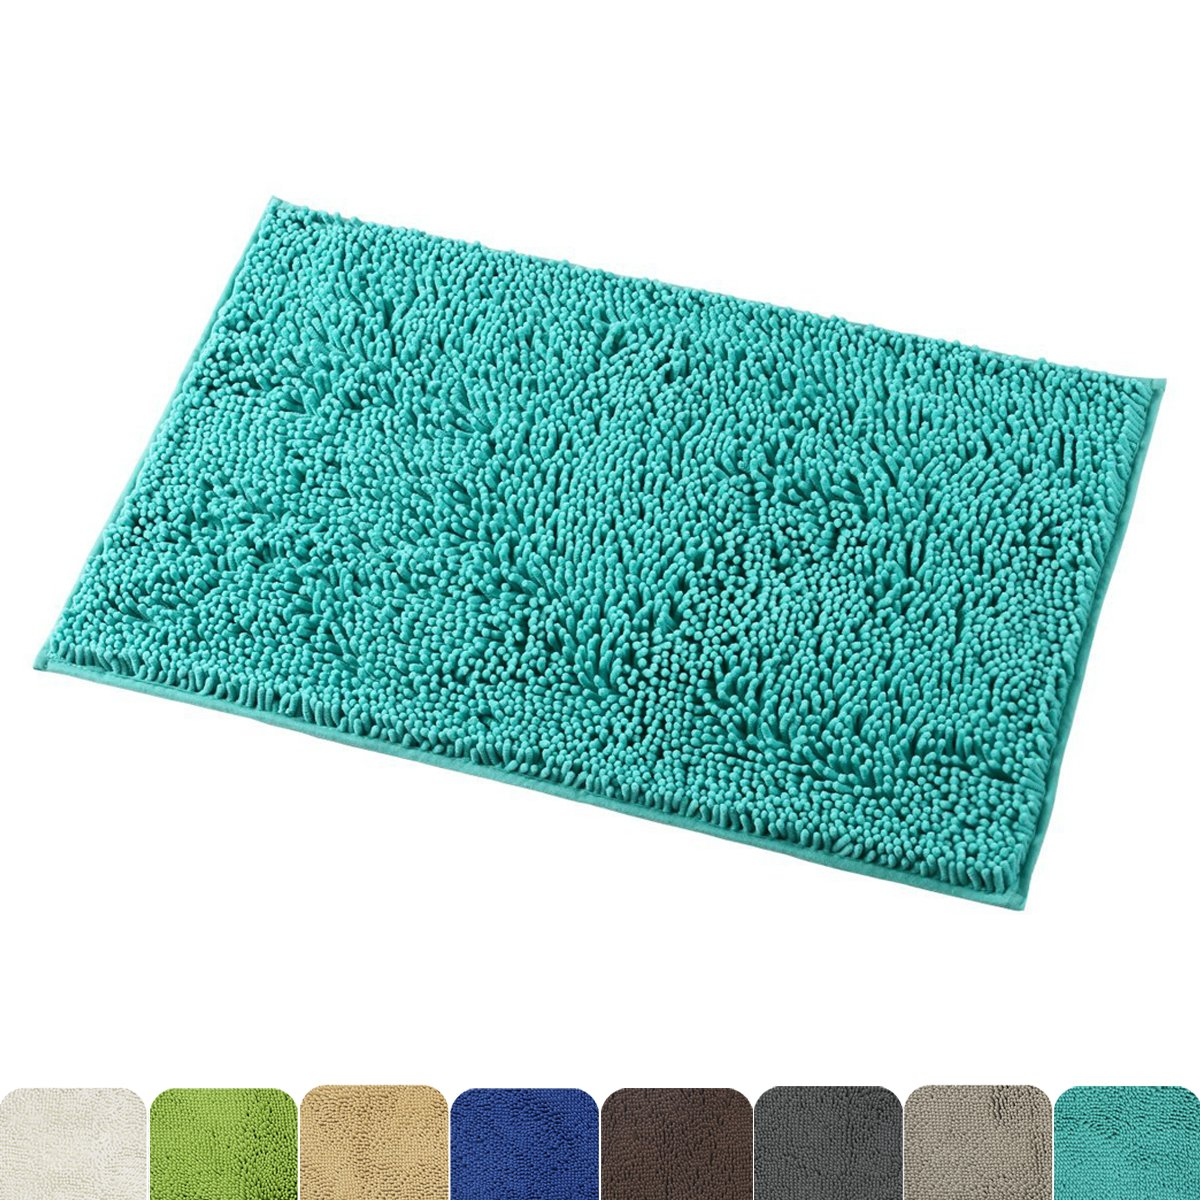 Bathroom floor towels - Mayshine Non Slip Bathroom Rug Shag Shower Mat Machine Washable Bath Mats With Water